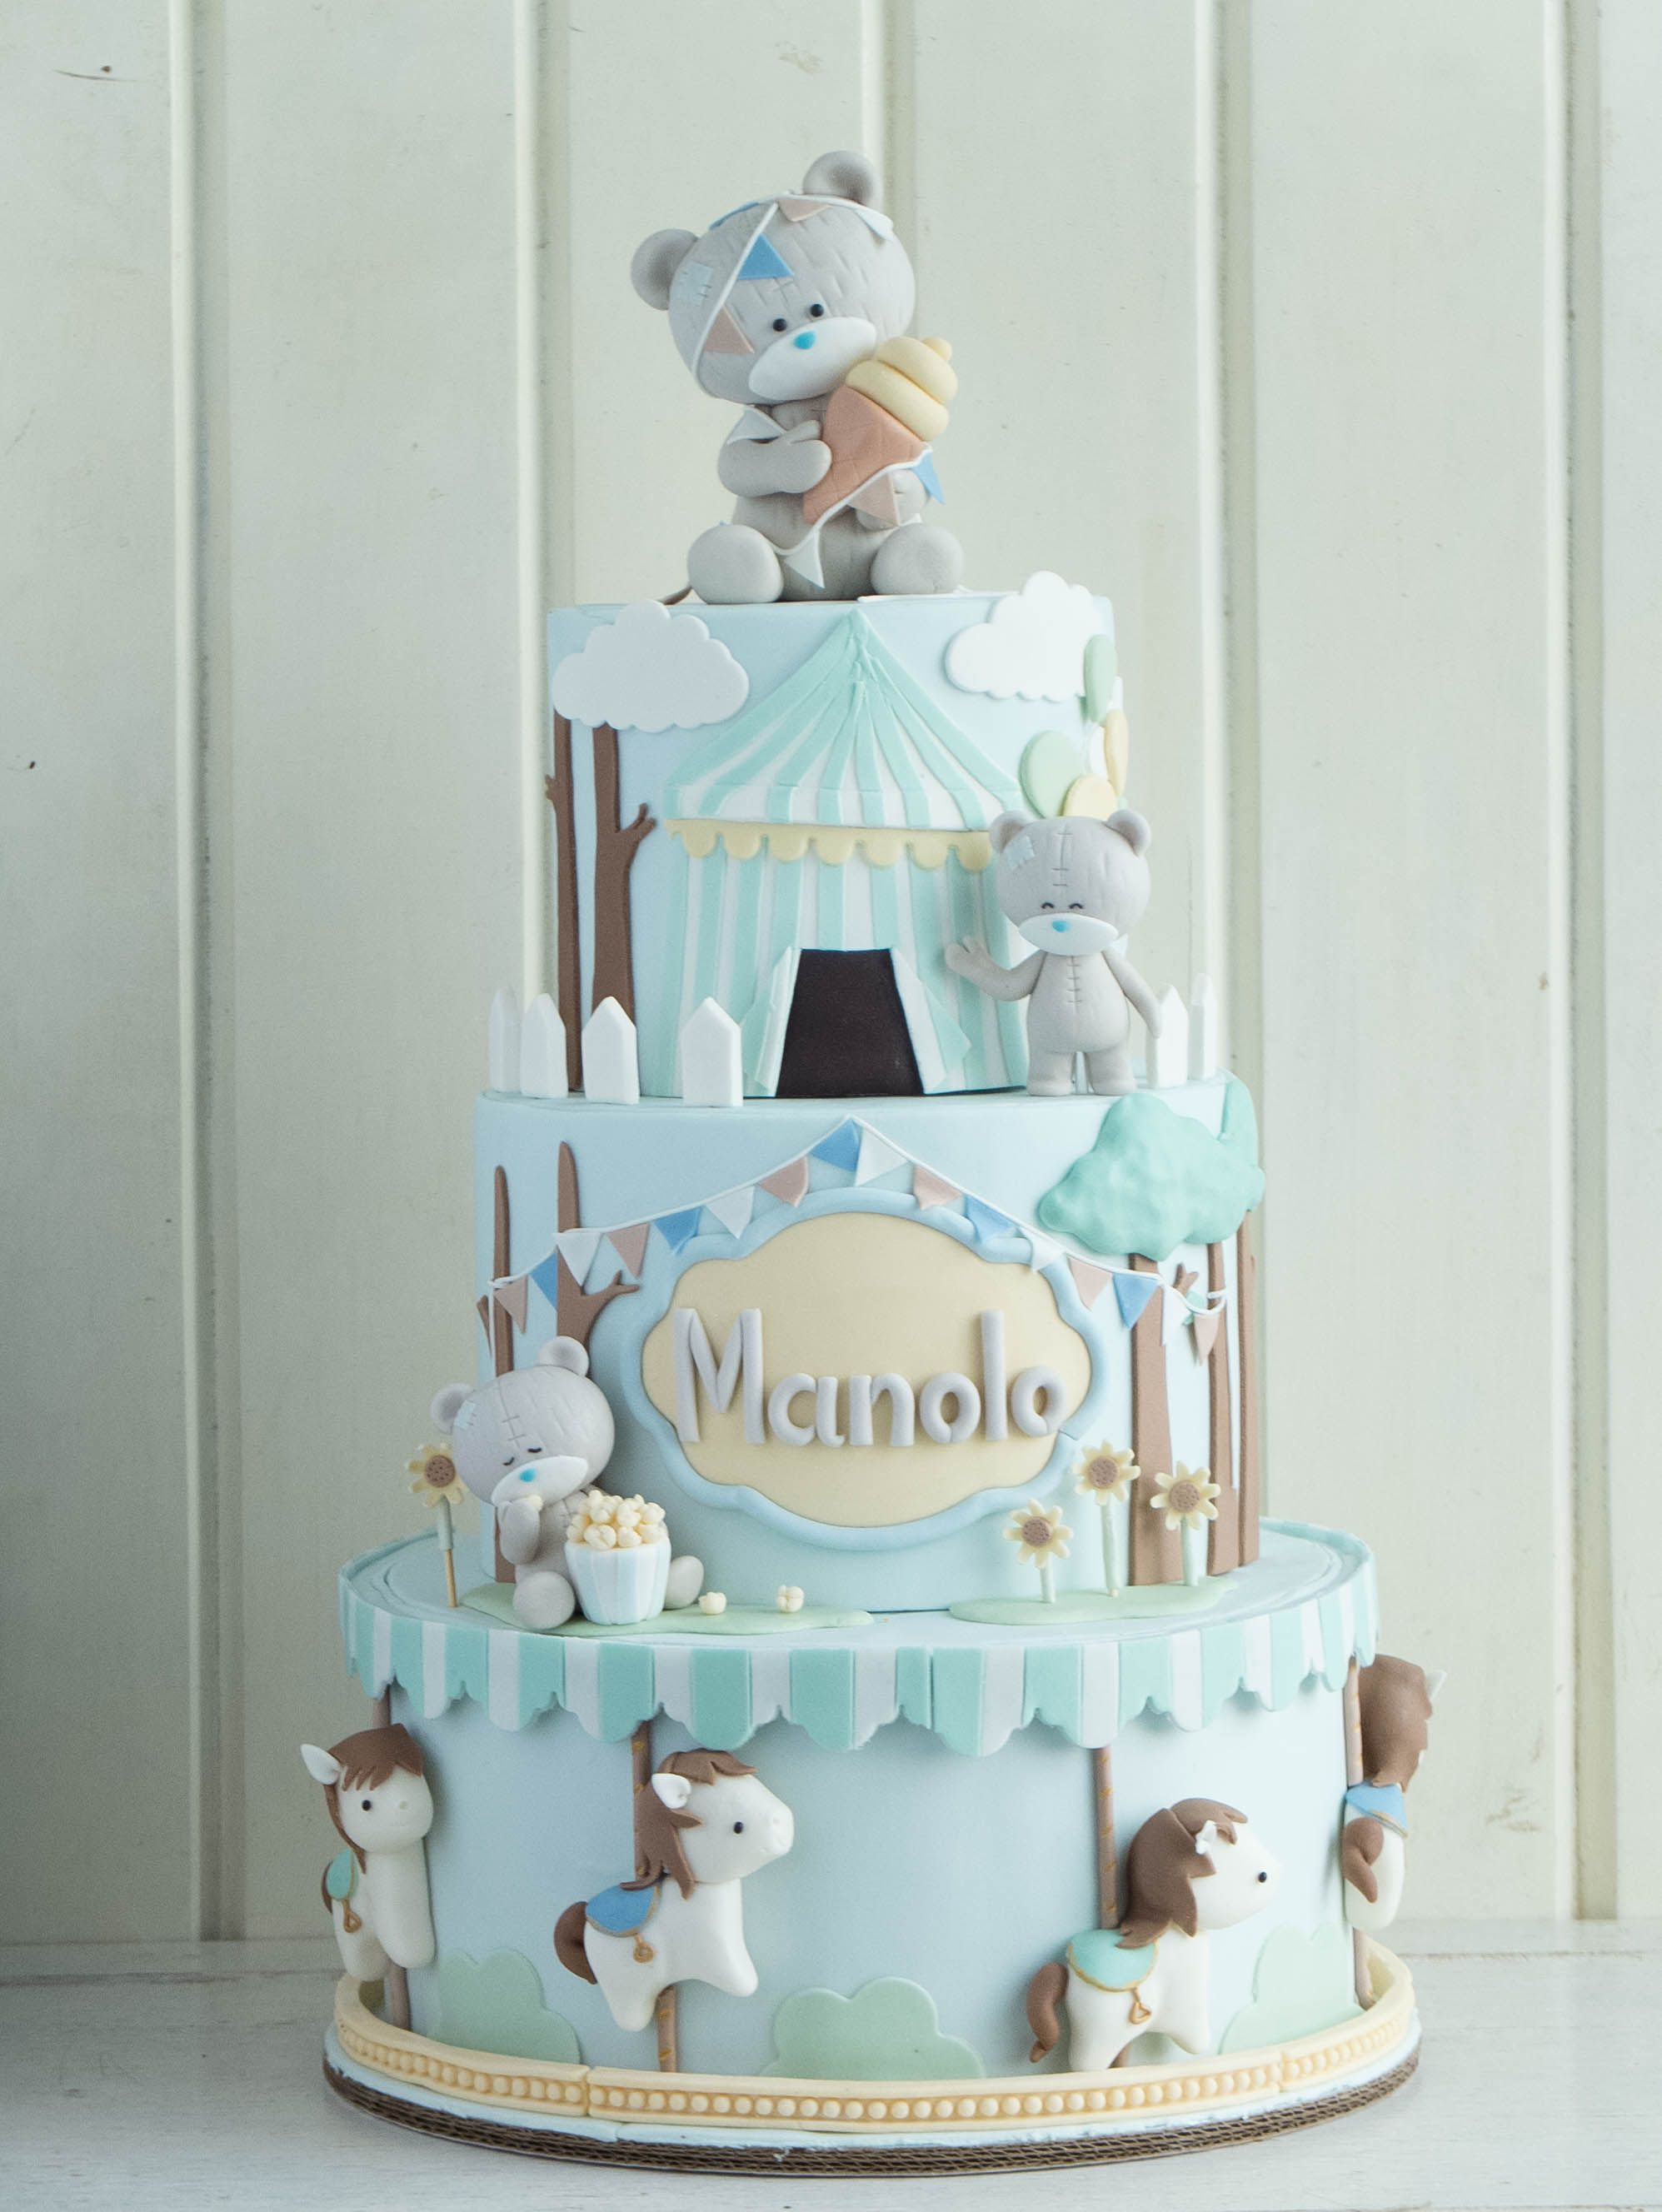 All patchy all party cottontail cake studio sugar